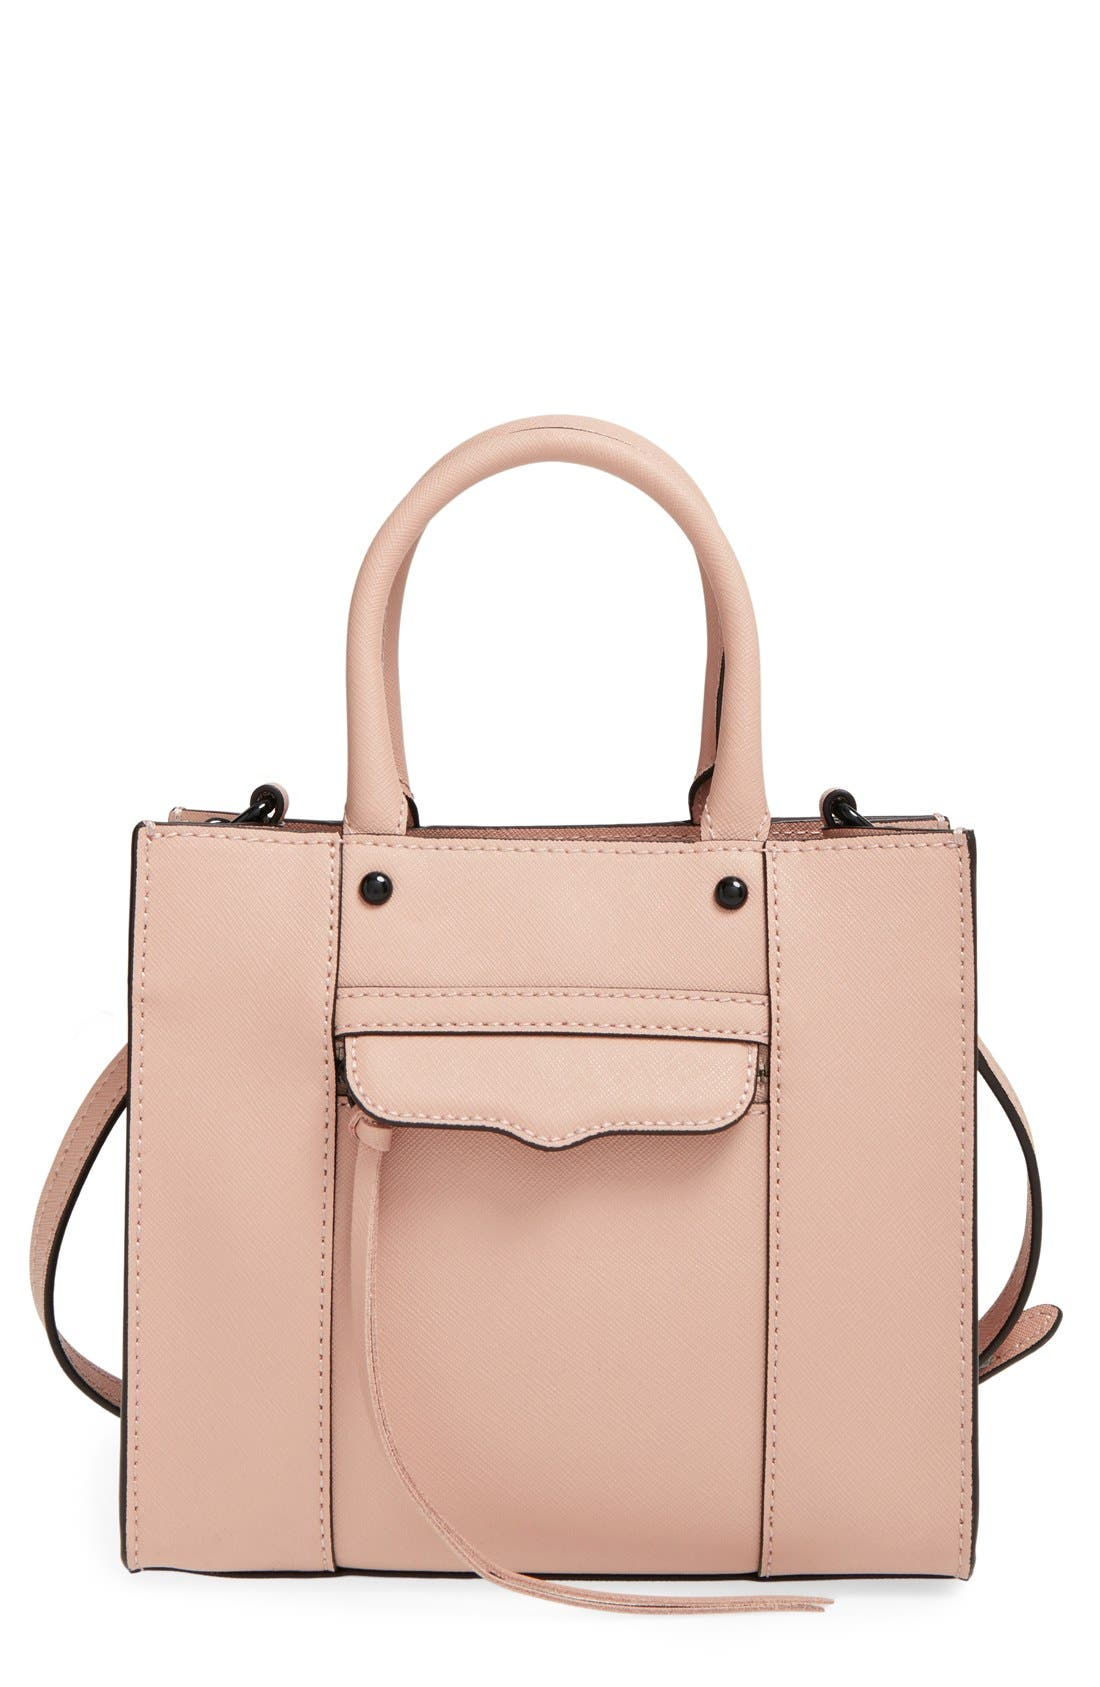 'Mini MAB Tote' Crossbody Bag,                             Main thumbnail 14, color,